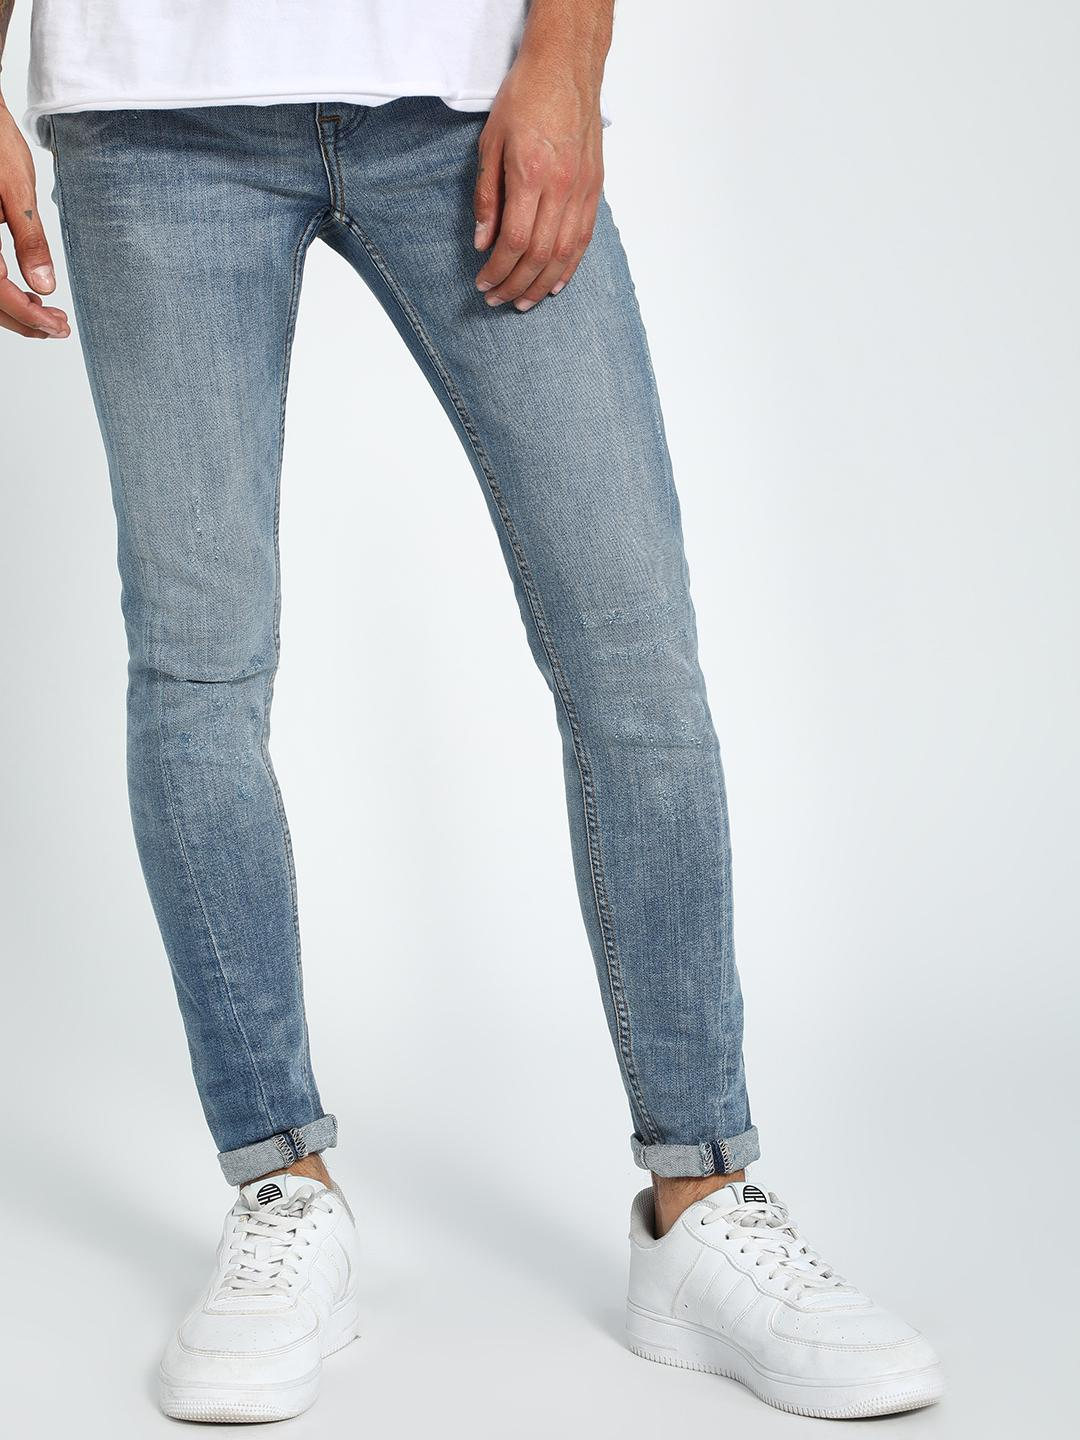 New Look PALE BLUE Light Wash Skinny Jeans 1